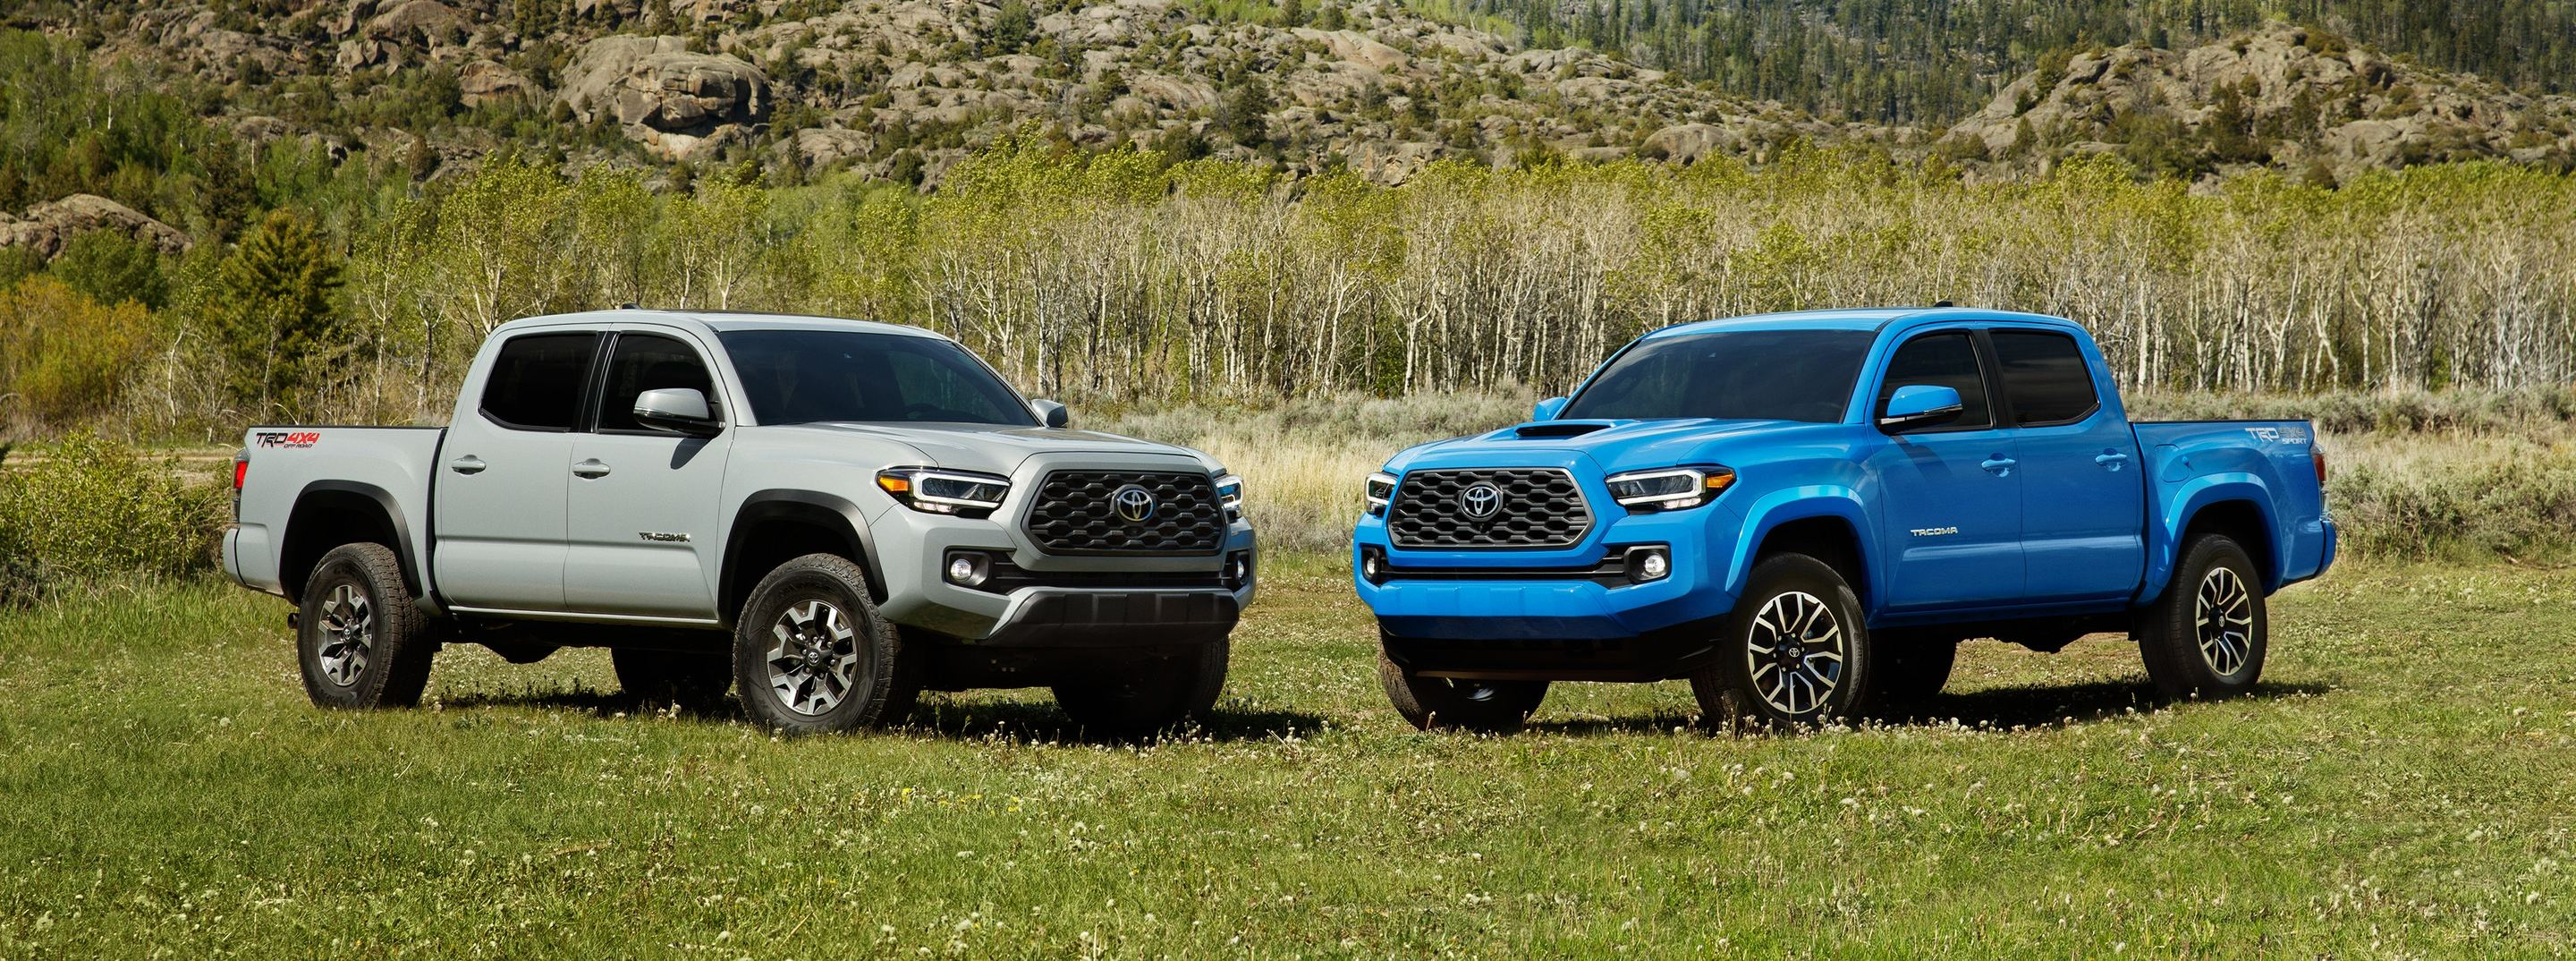 2020 Toyota Tacoma for Sale near Pittsburgh, PA